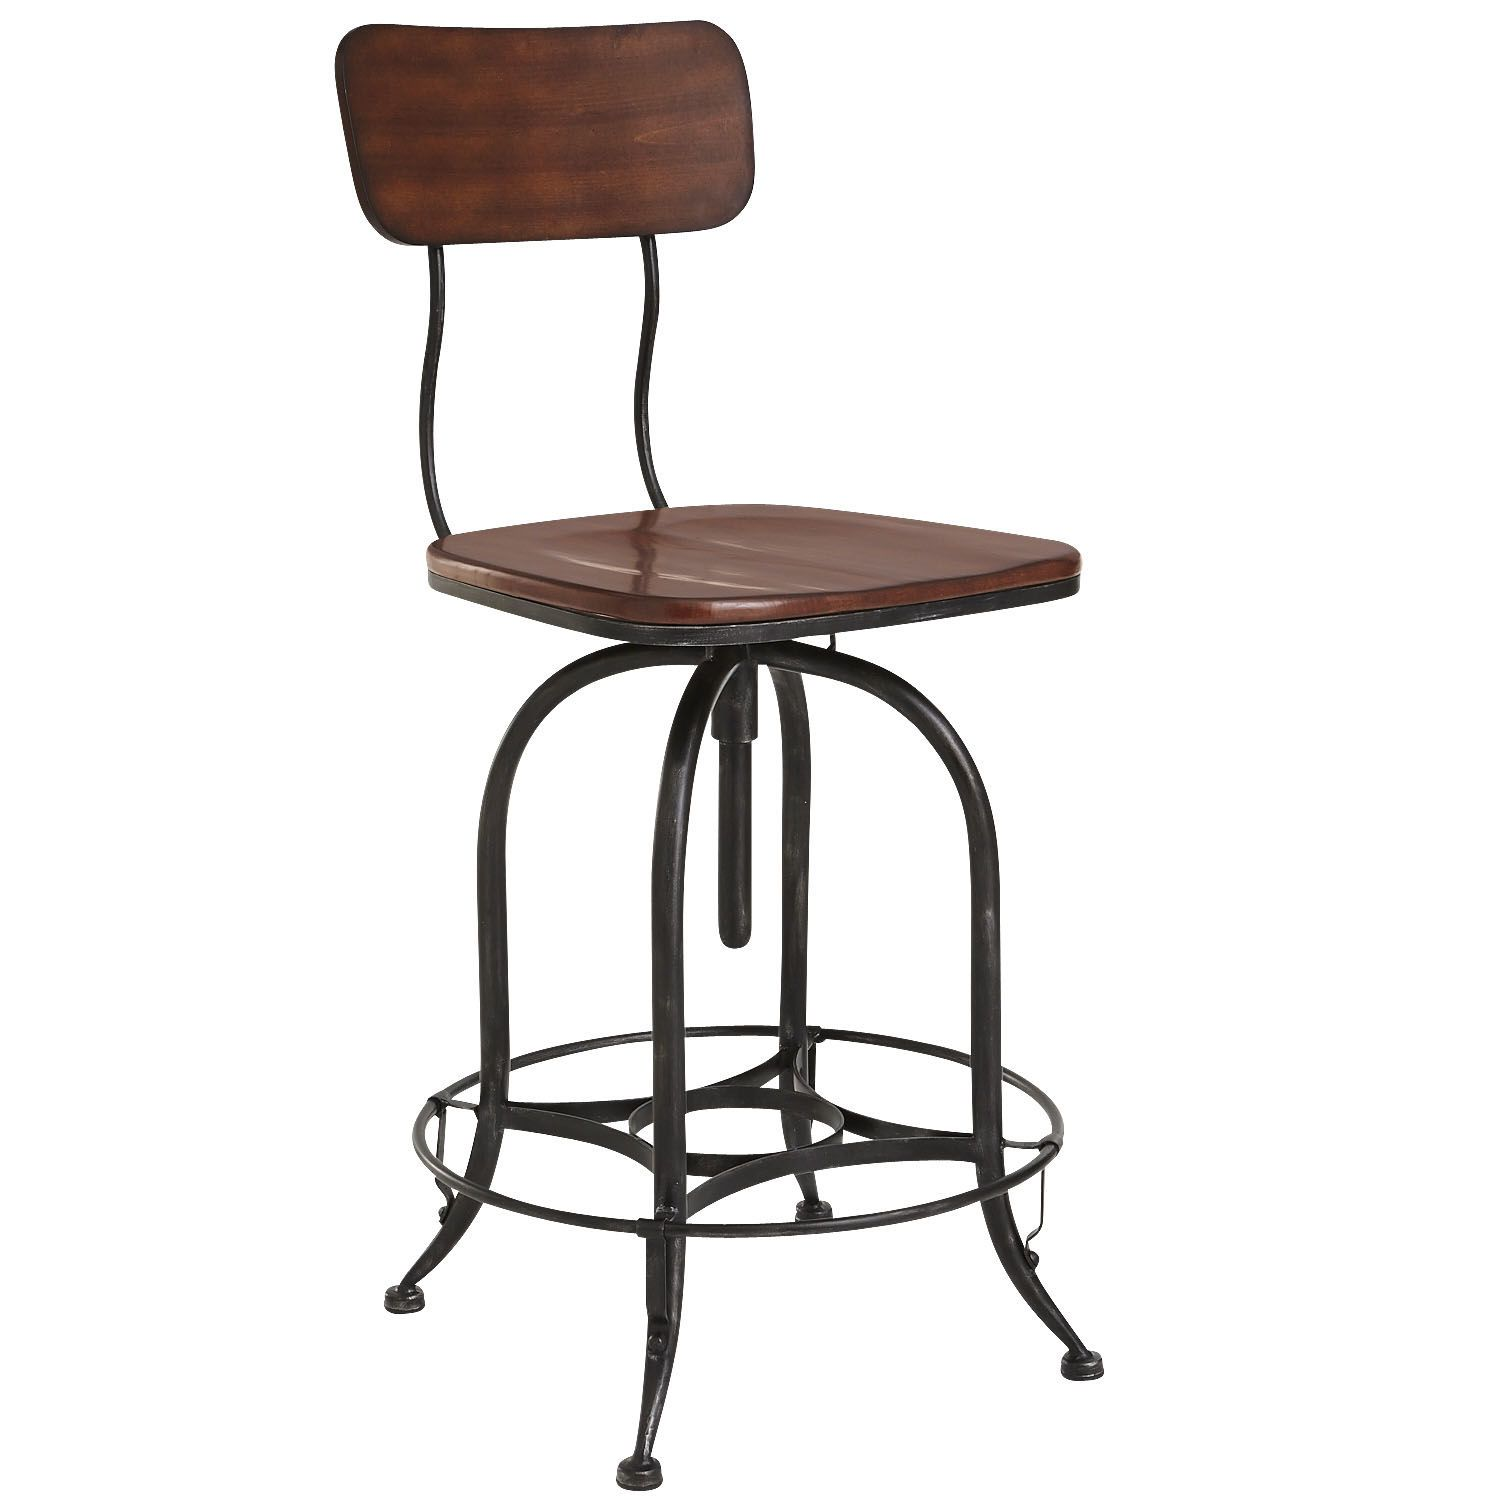 Stool Height For Kitchen Island Cm: Stanford Swivel Counterstool - Wood